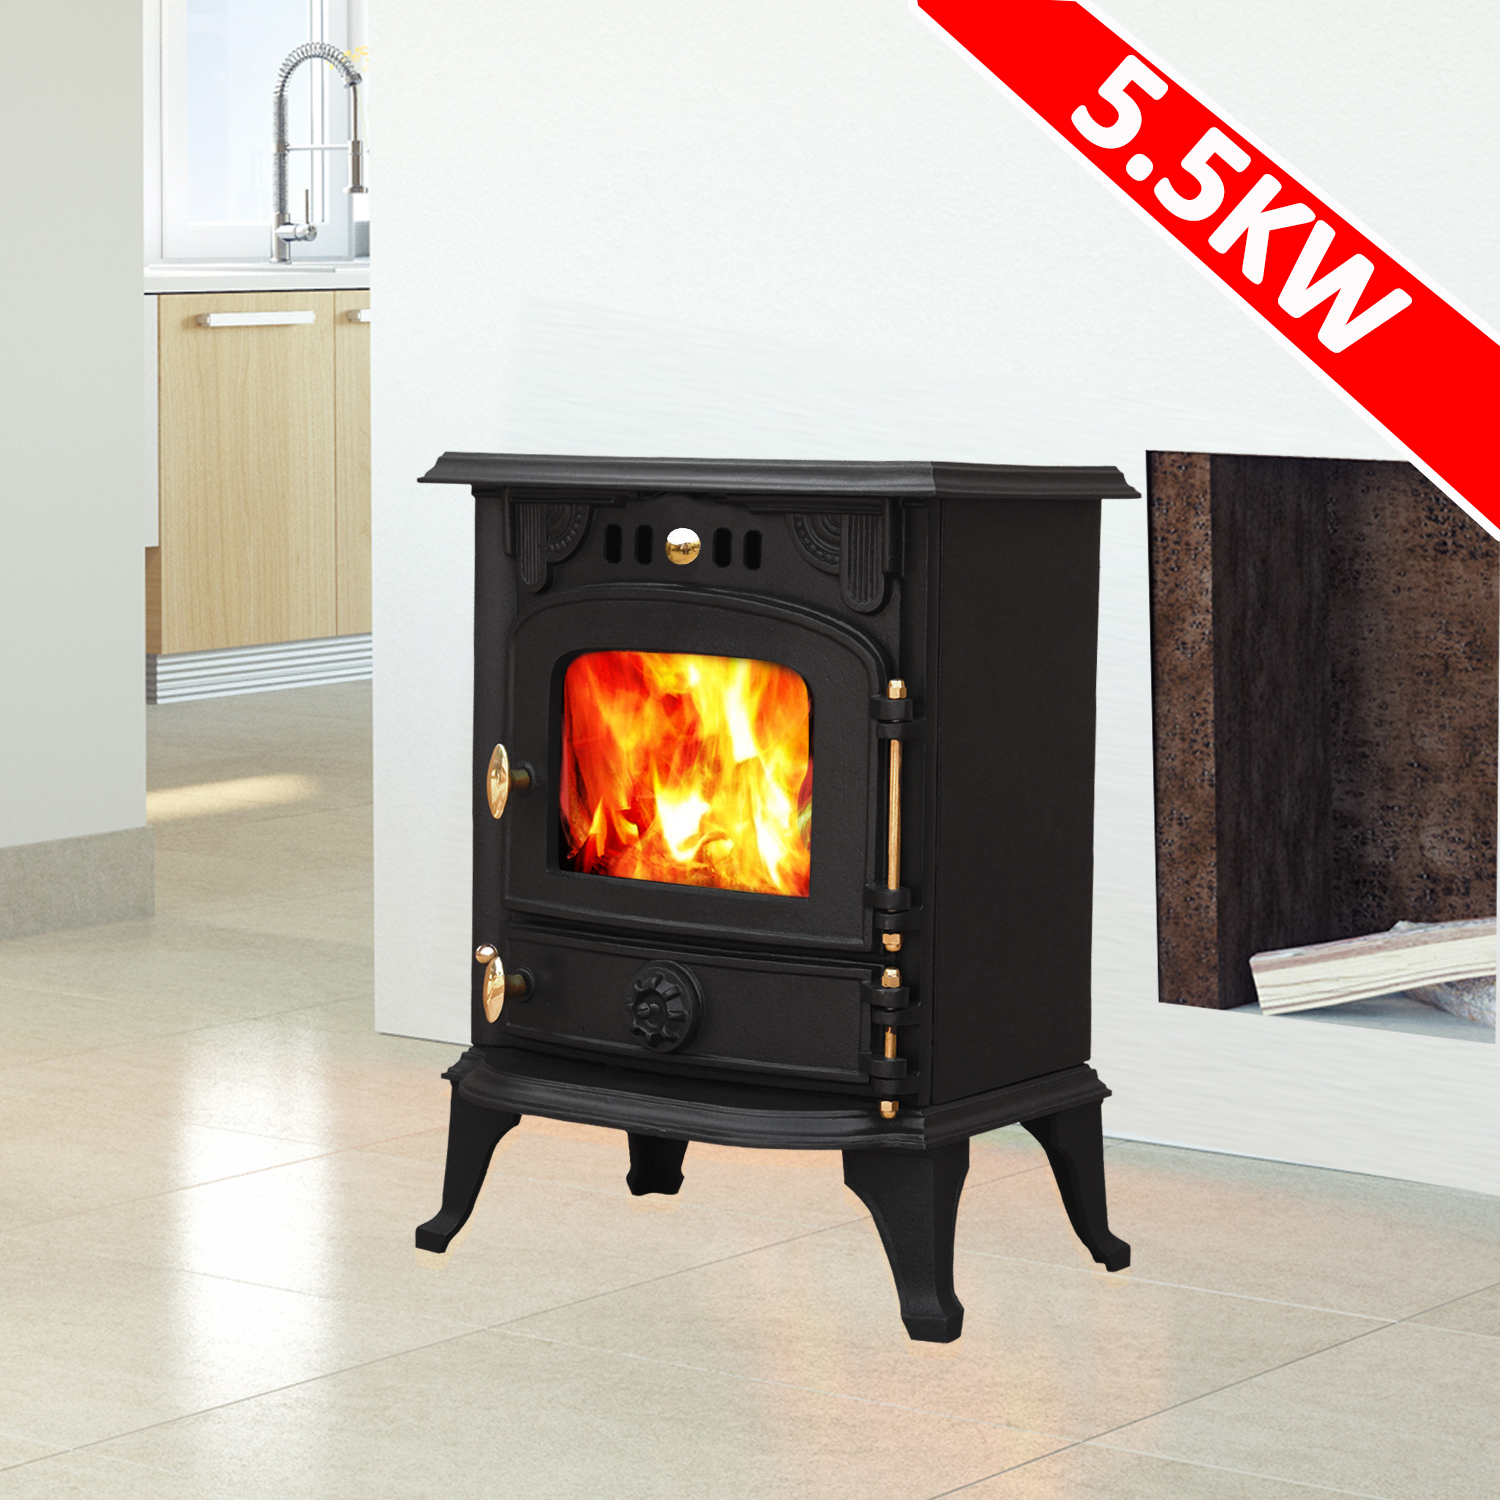 harmston 5 5kw multifuel cast iron log burner wood burning